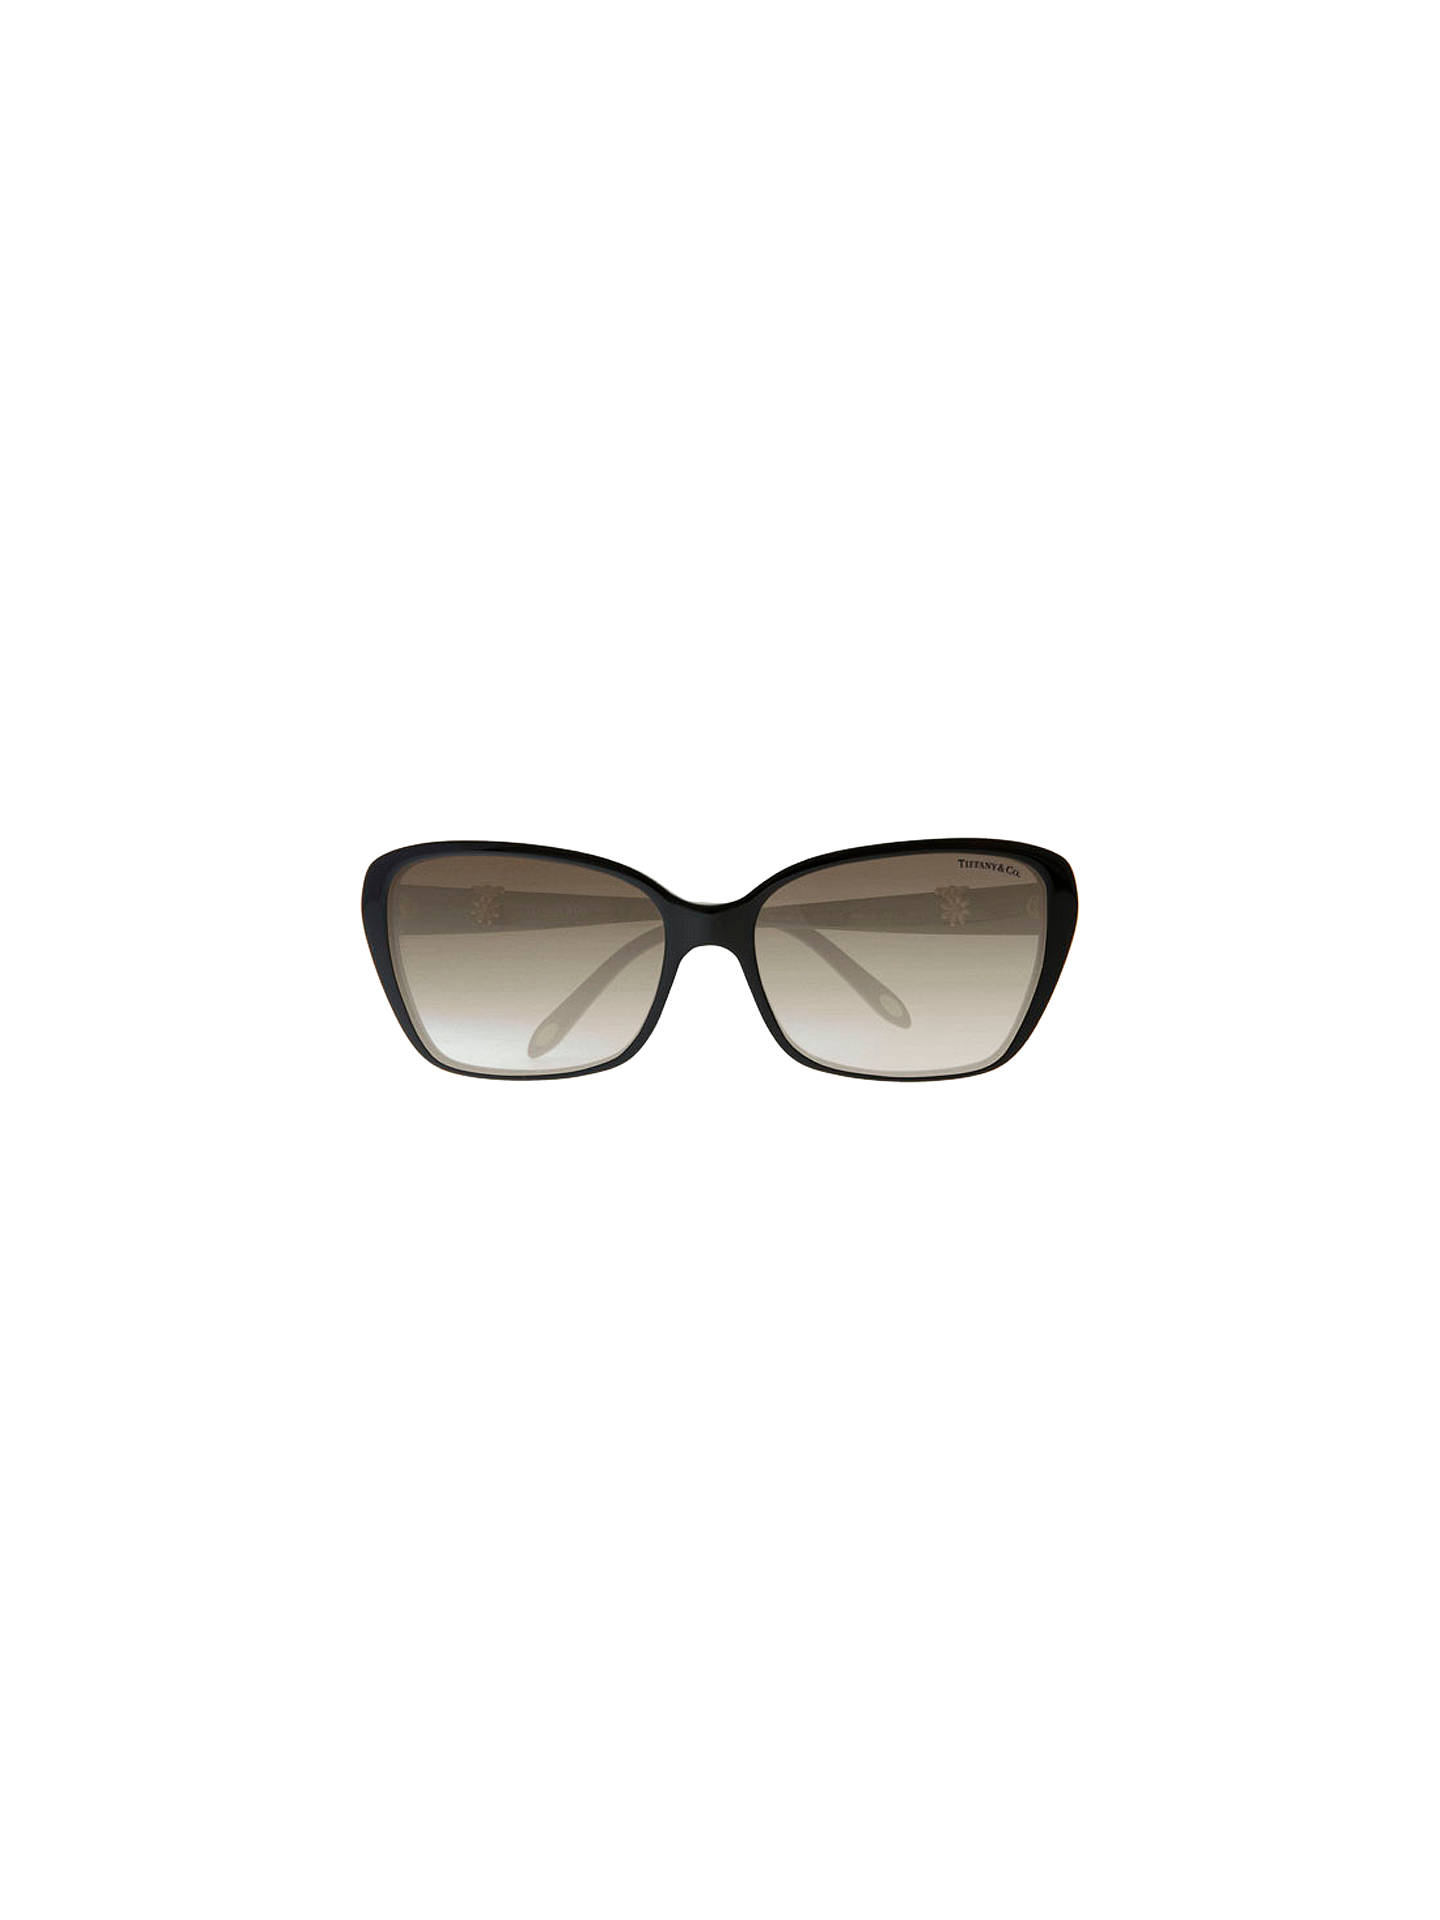 920de450d042 ... Buy Tiffany & Co TF4096B Multi Daisy Sunglasses, Black Online at  johnlewis. ...